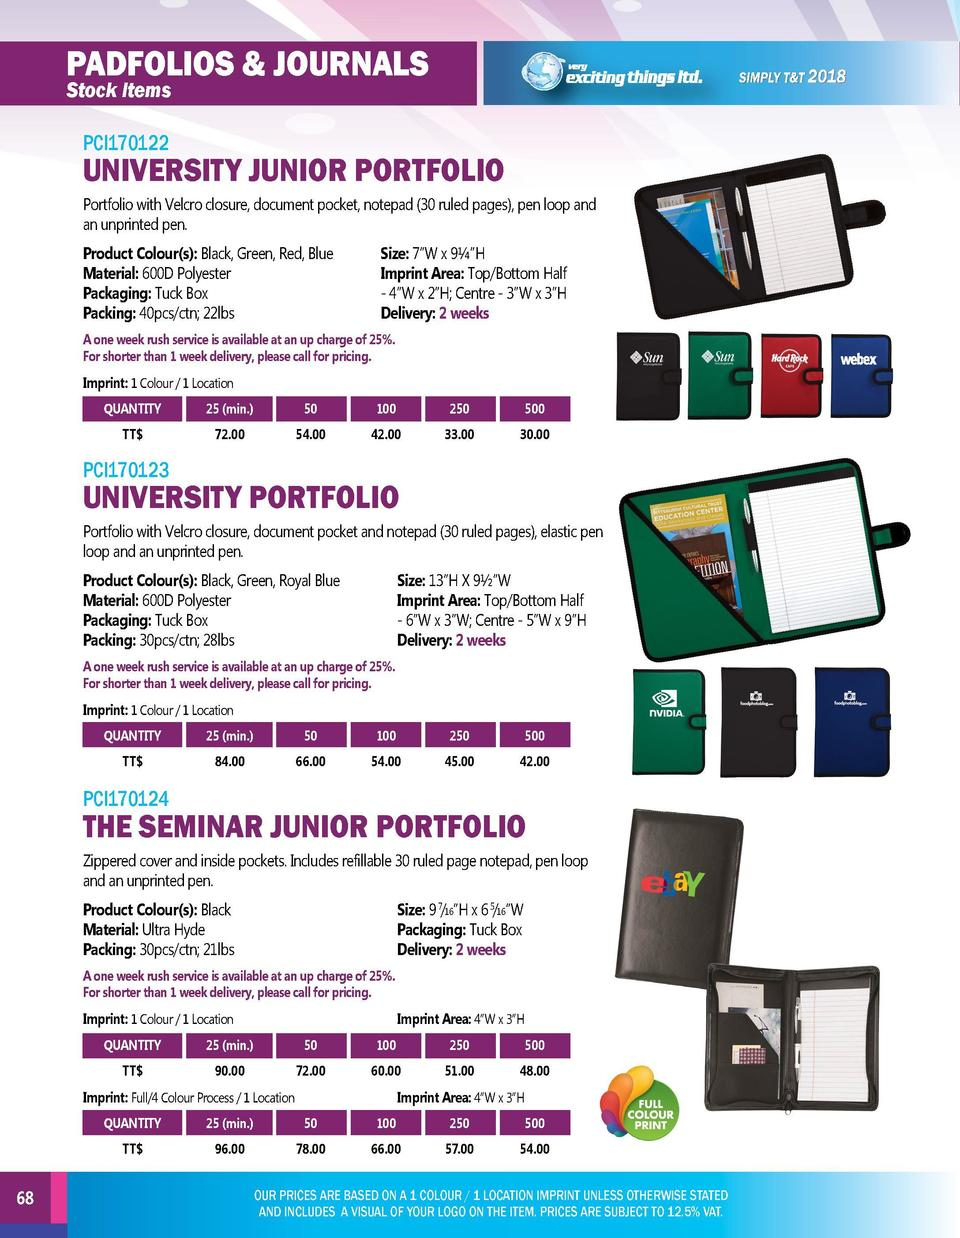 padfolios   journals  padfolios   journals  Stock Items  Stock Items PCI170125  PCI170122  UNIVERSITY JUNIOR PORTFOLIO Por...